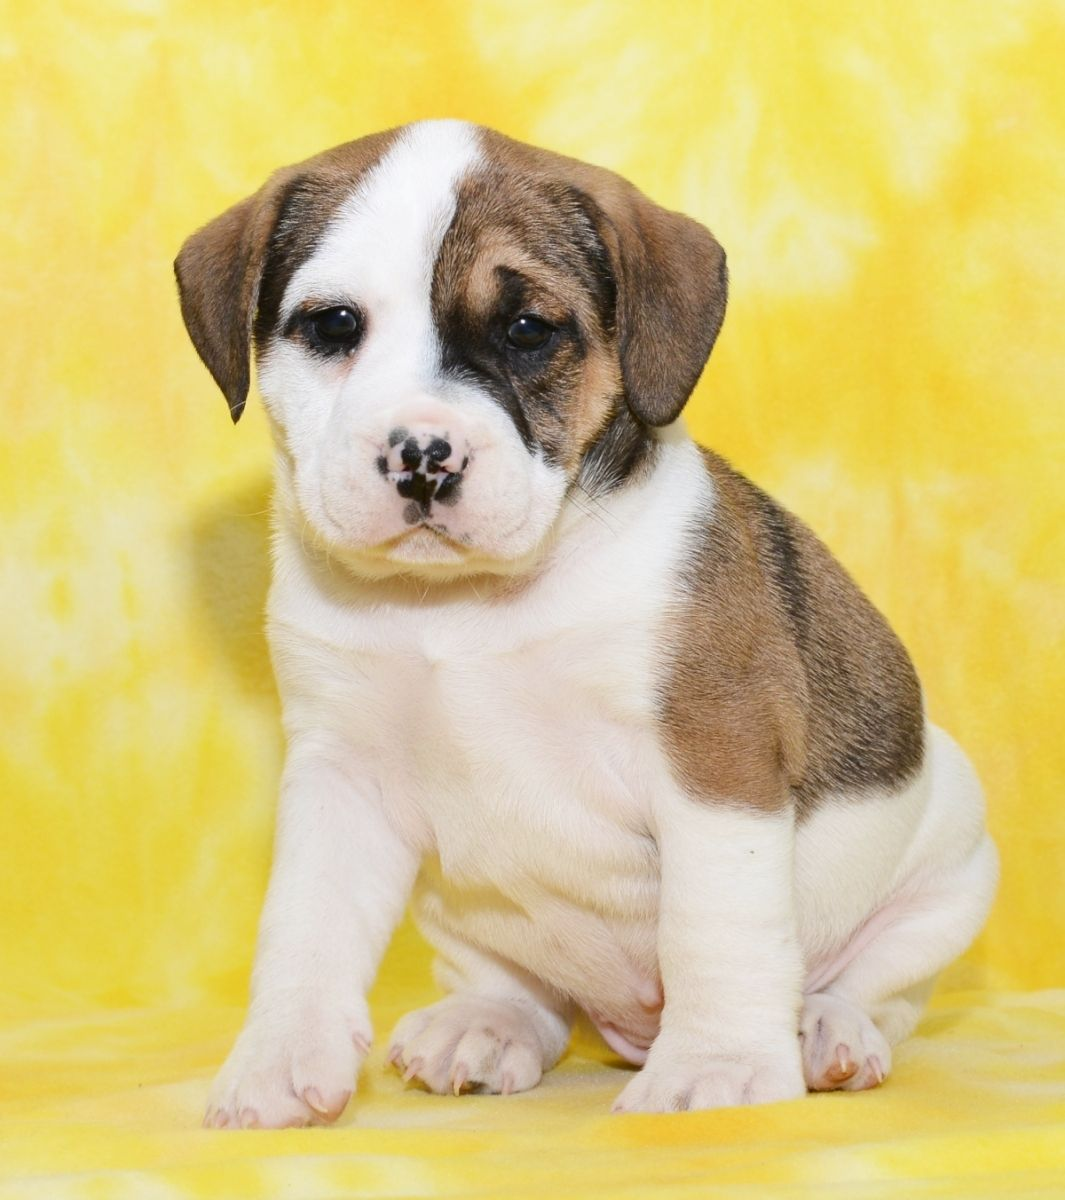 Puppies For Sale Rottweiler Puppies Pitbull Puppies Dogs And Puppies